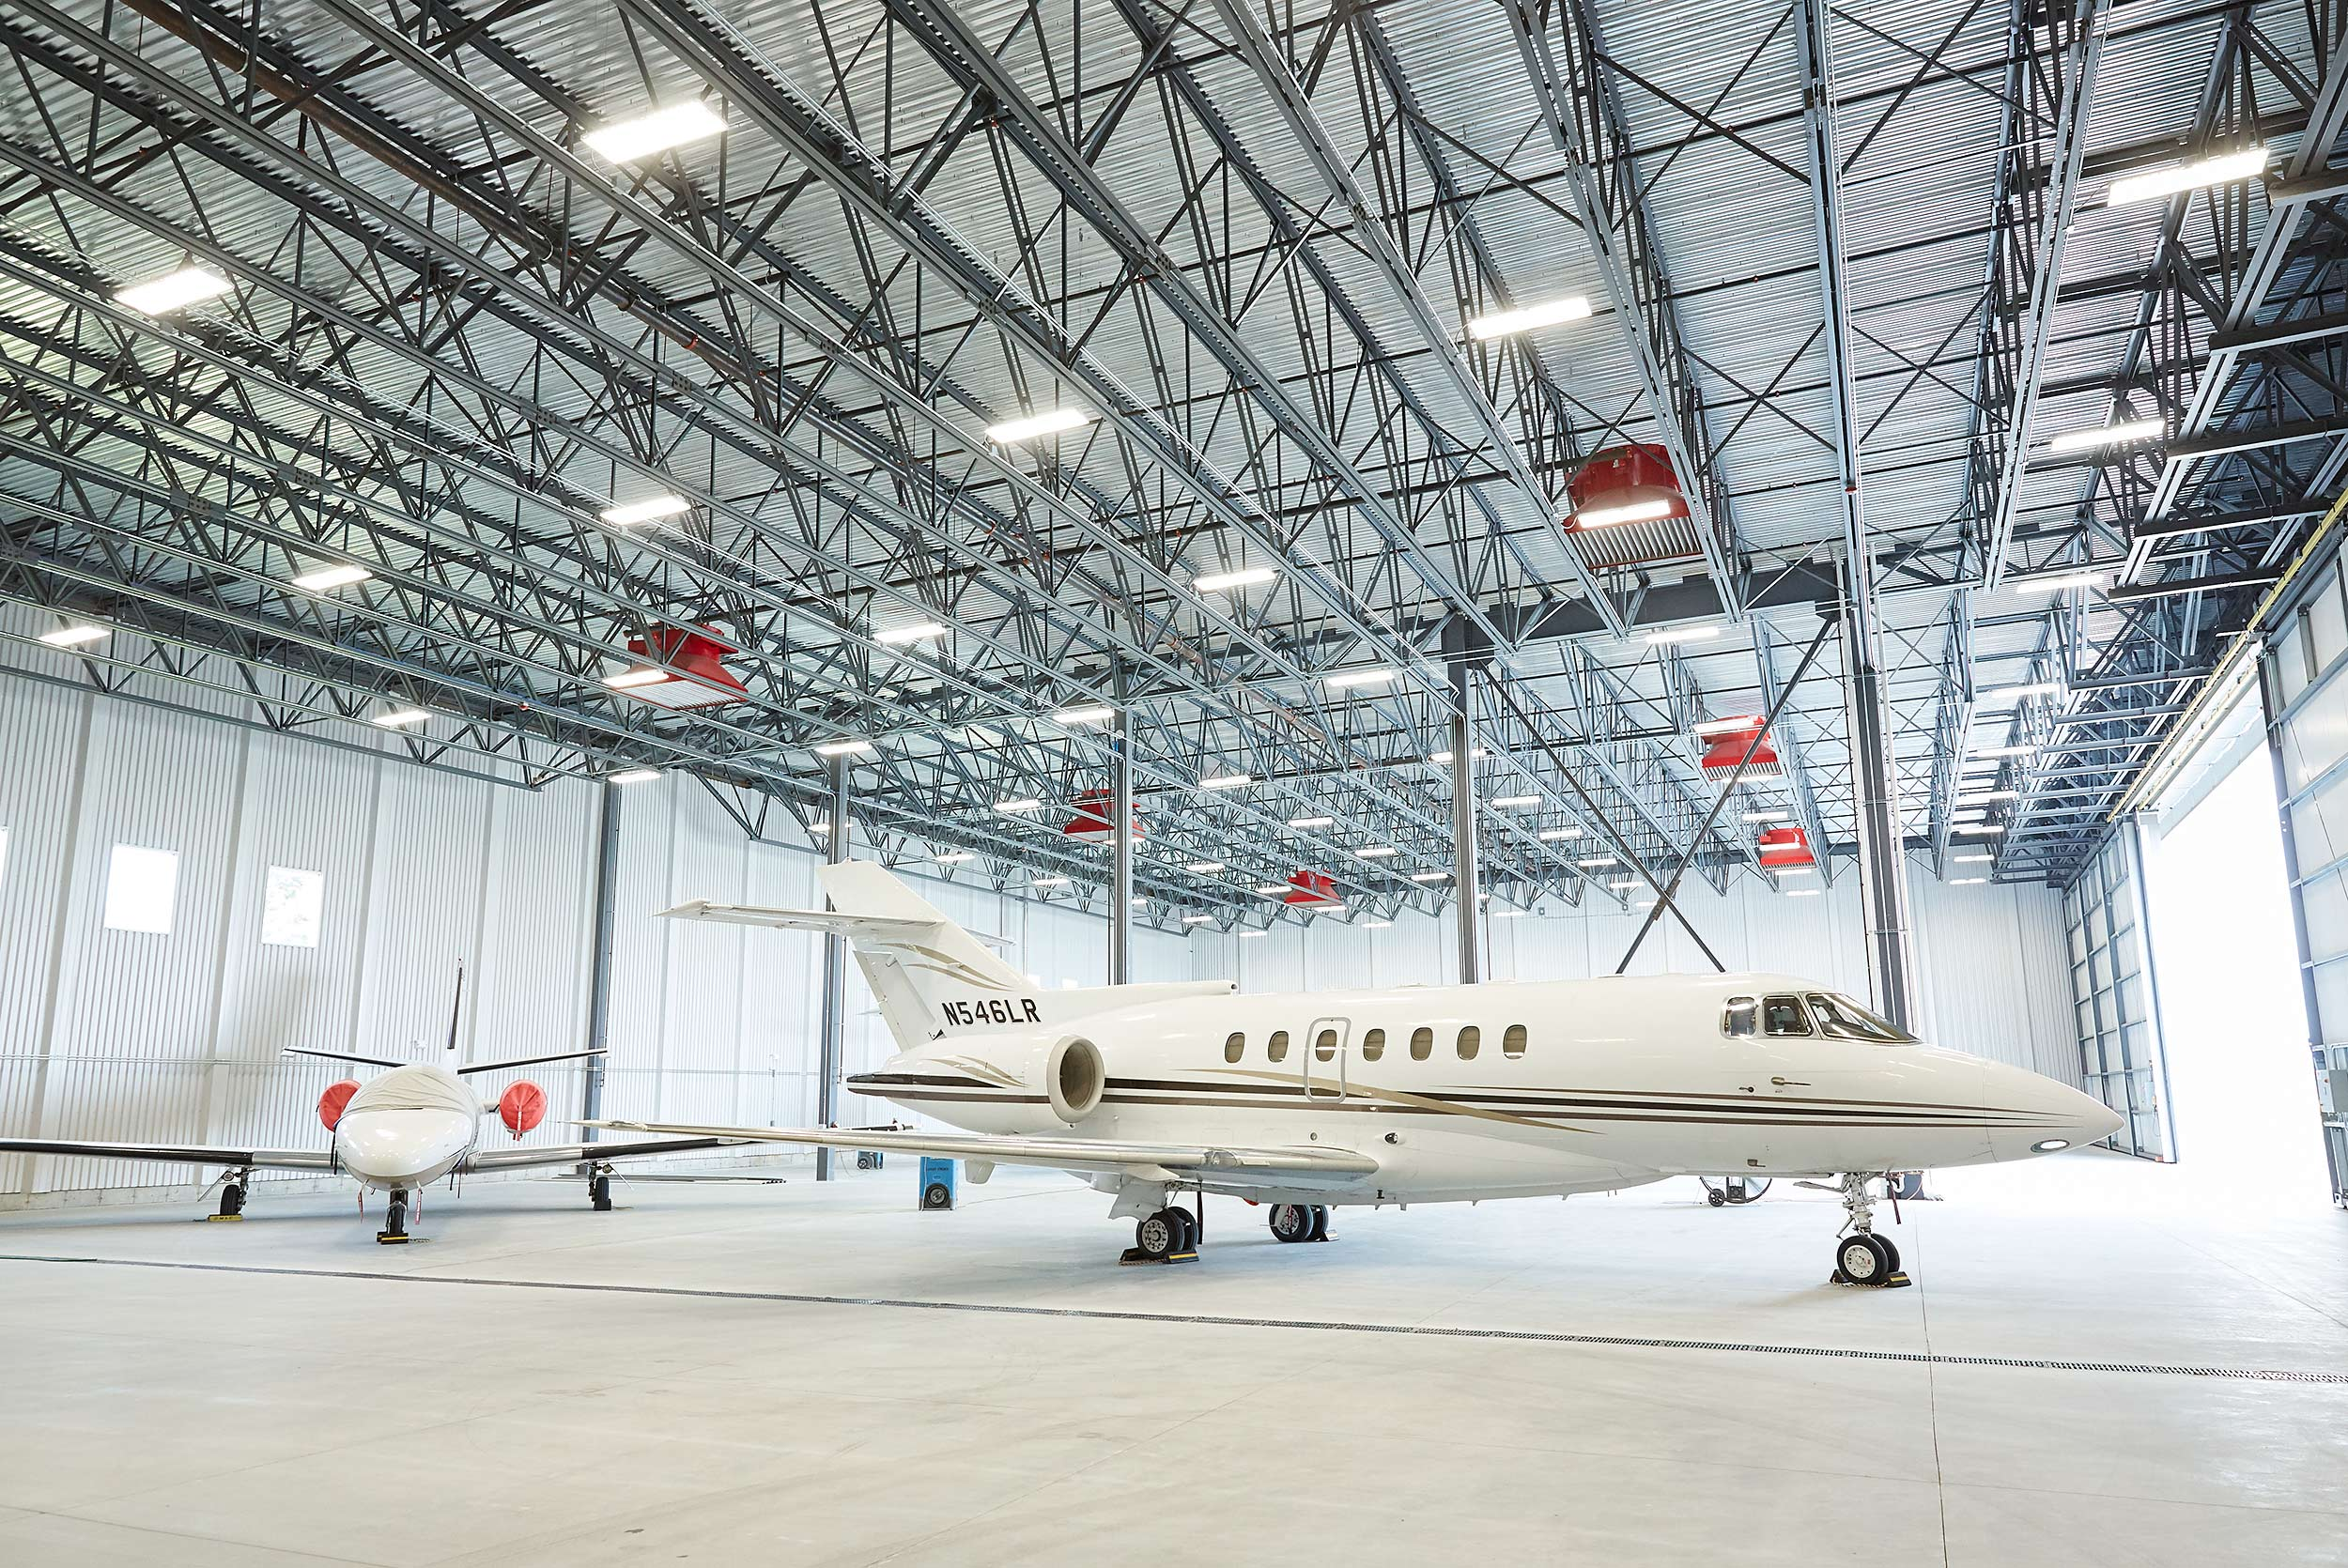 Corporate hanger - Steve Craft Photography - Phoenix Arizona Aviation Photographer